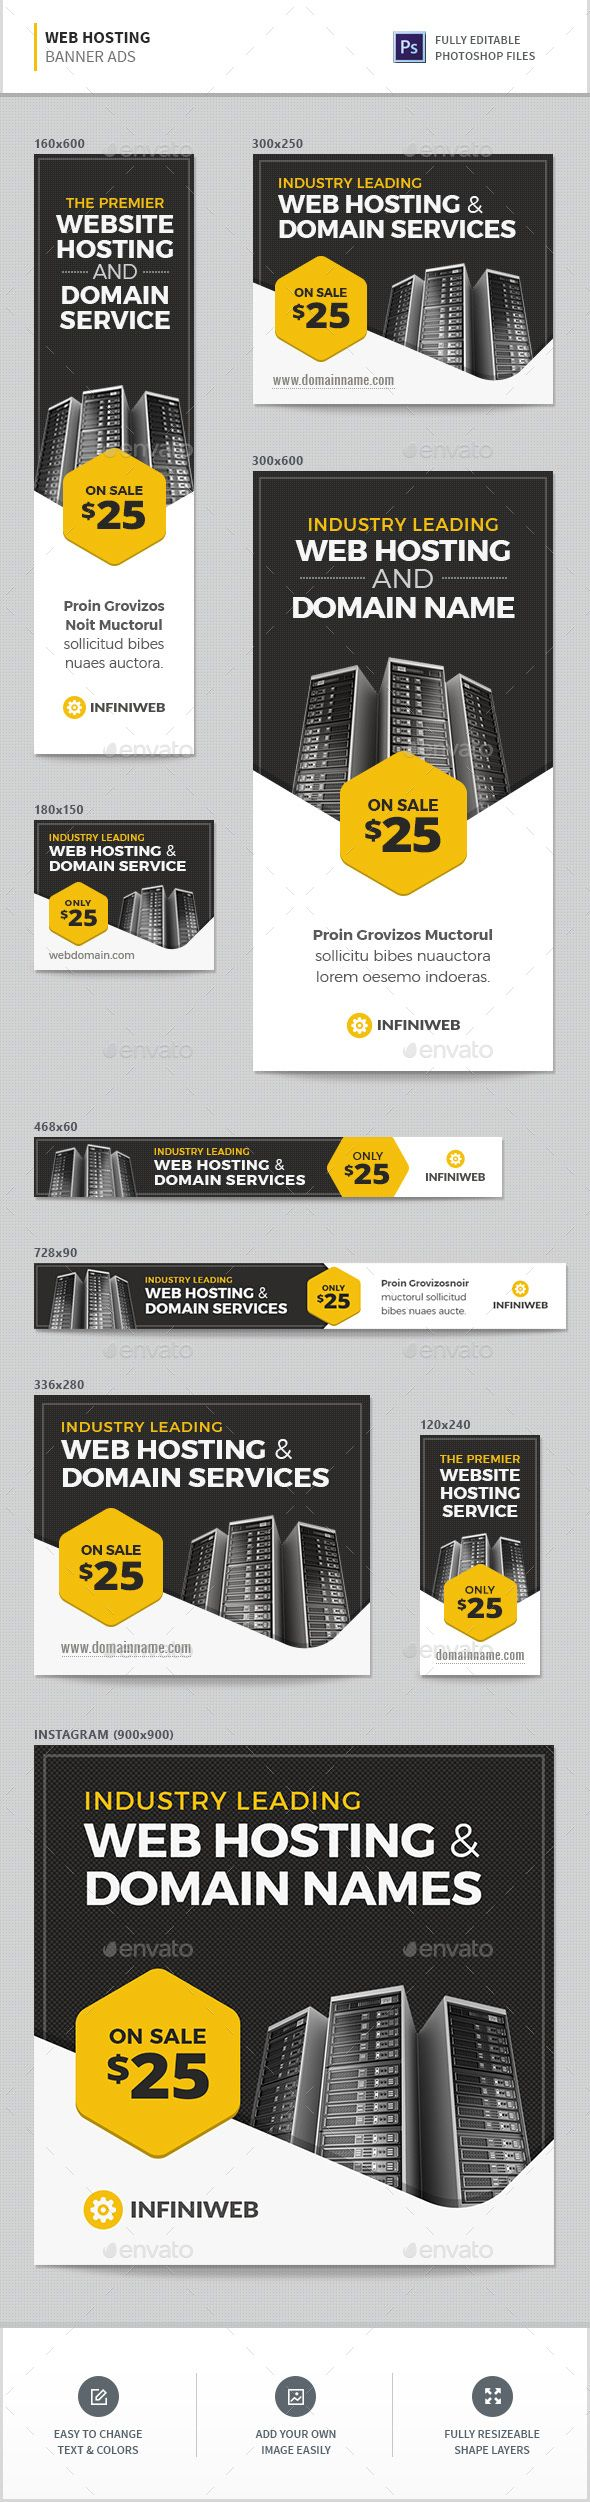 Web Hosting Banners   Banner template, Company banner and Banners